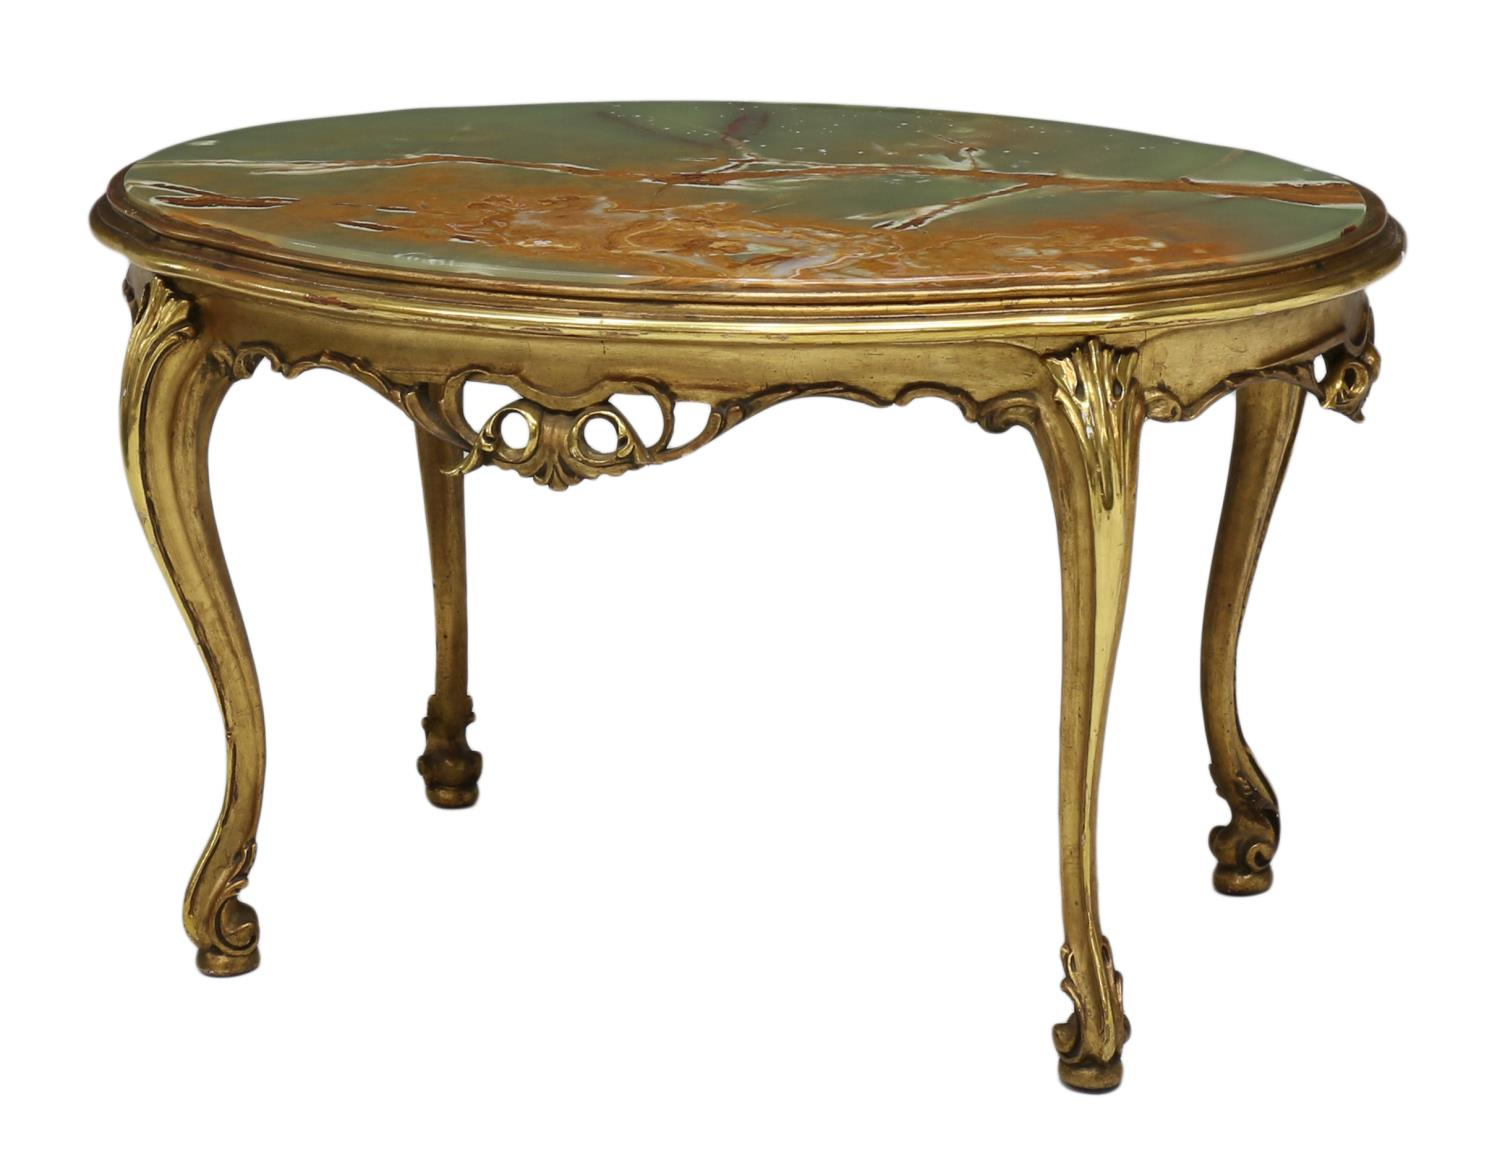 Italian Louis Xv Style Onyx Coffee Table Holiday Estates Auction Day Two Austin Auction Gallery